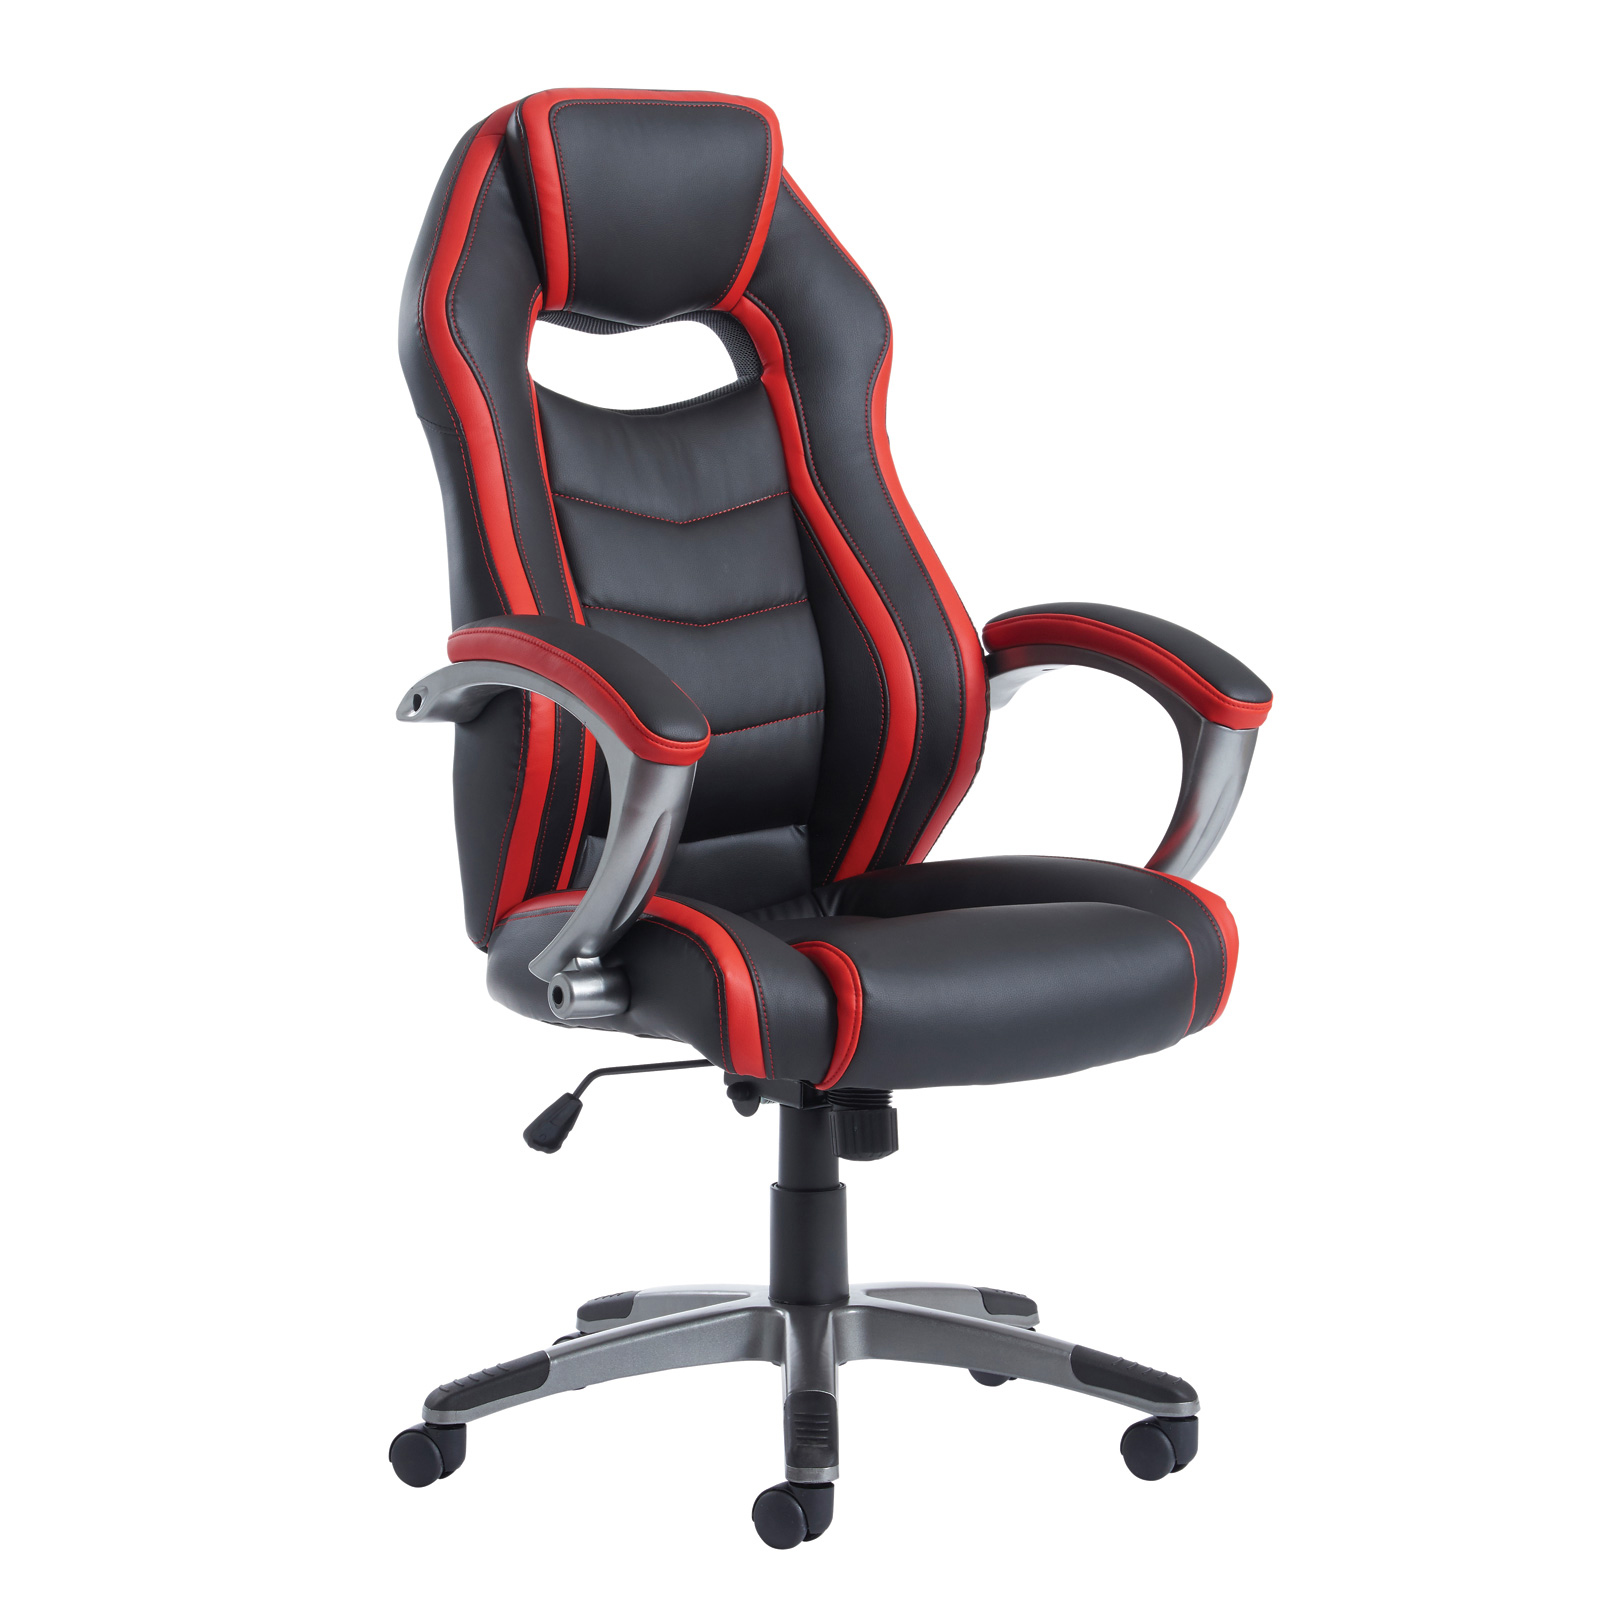 Executive Chairs Jensen high back executive chair - black and red faux leather